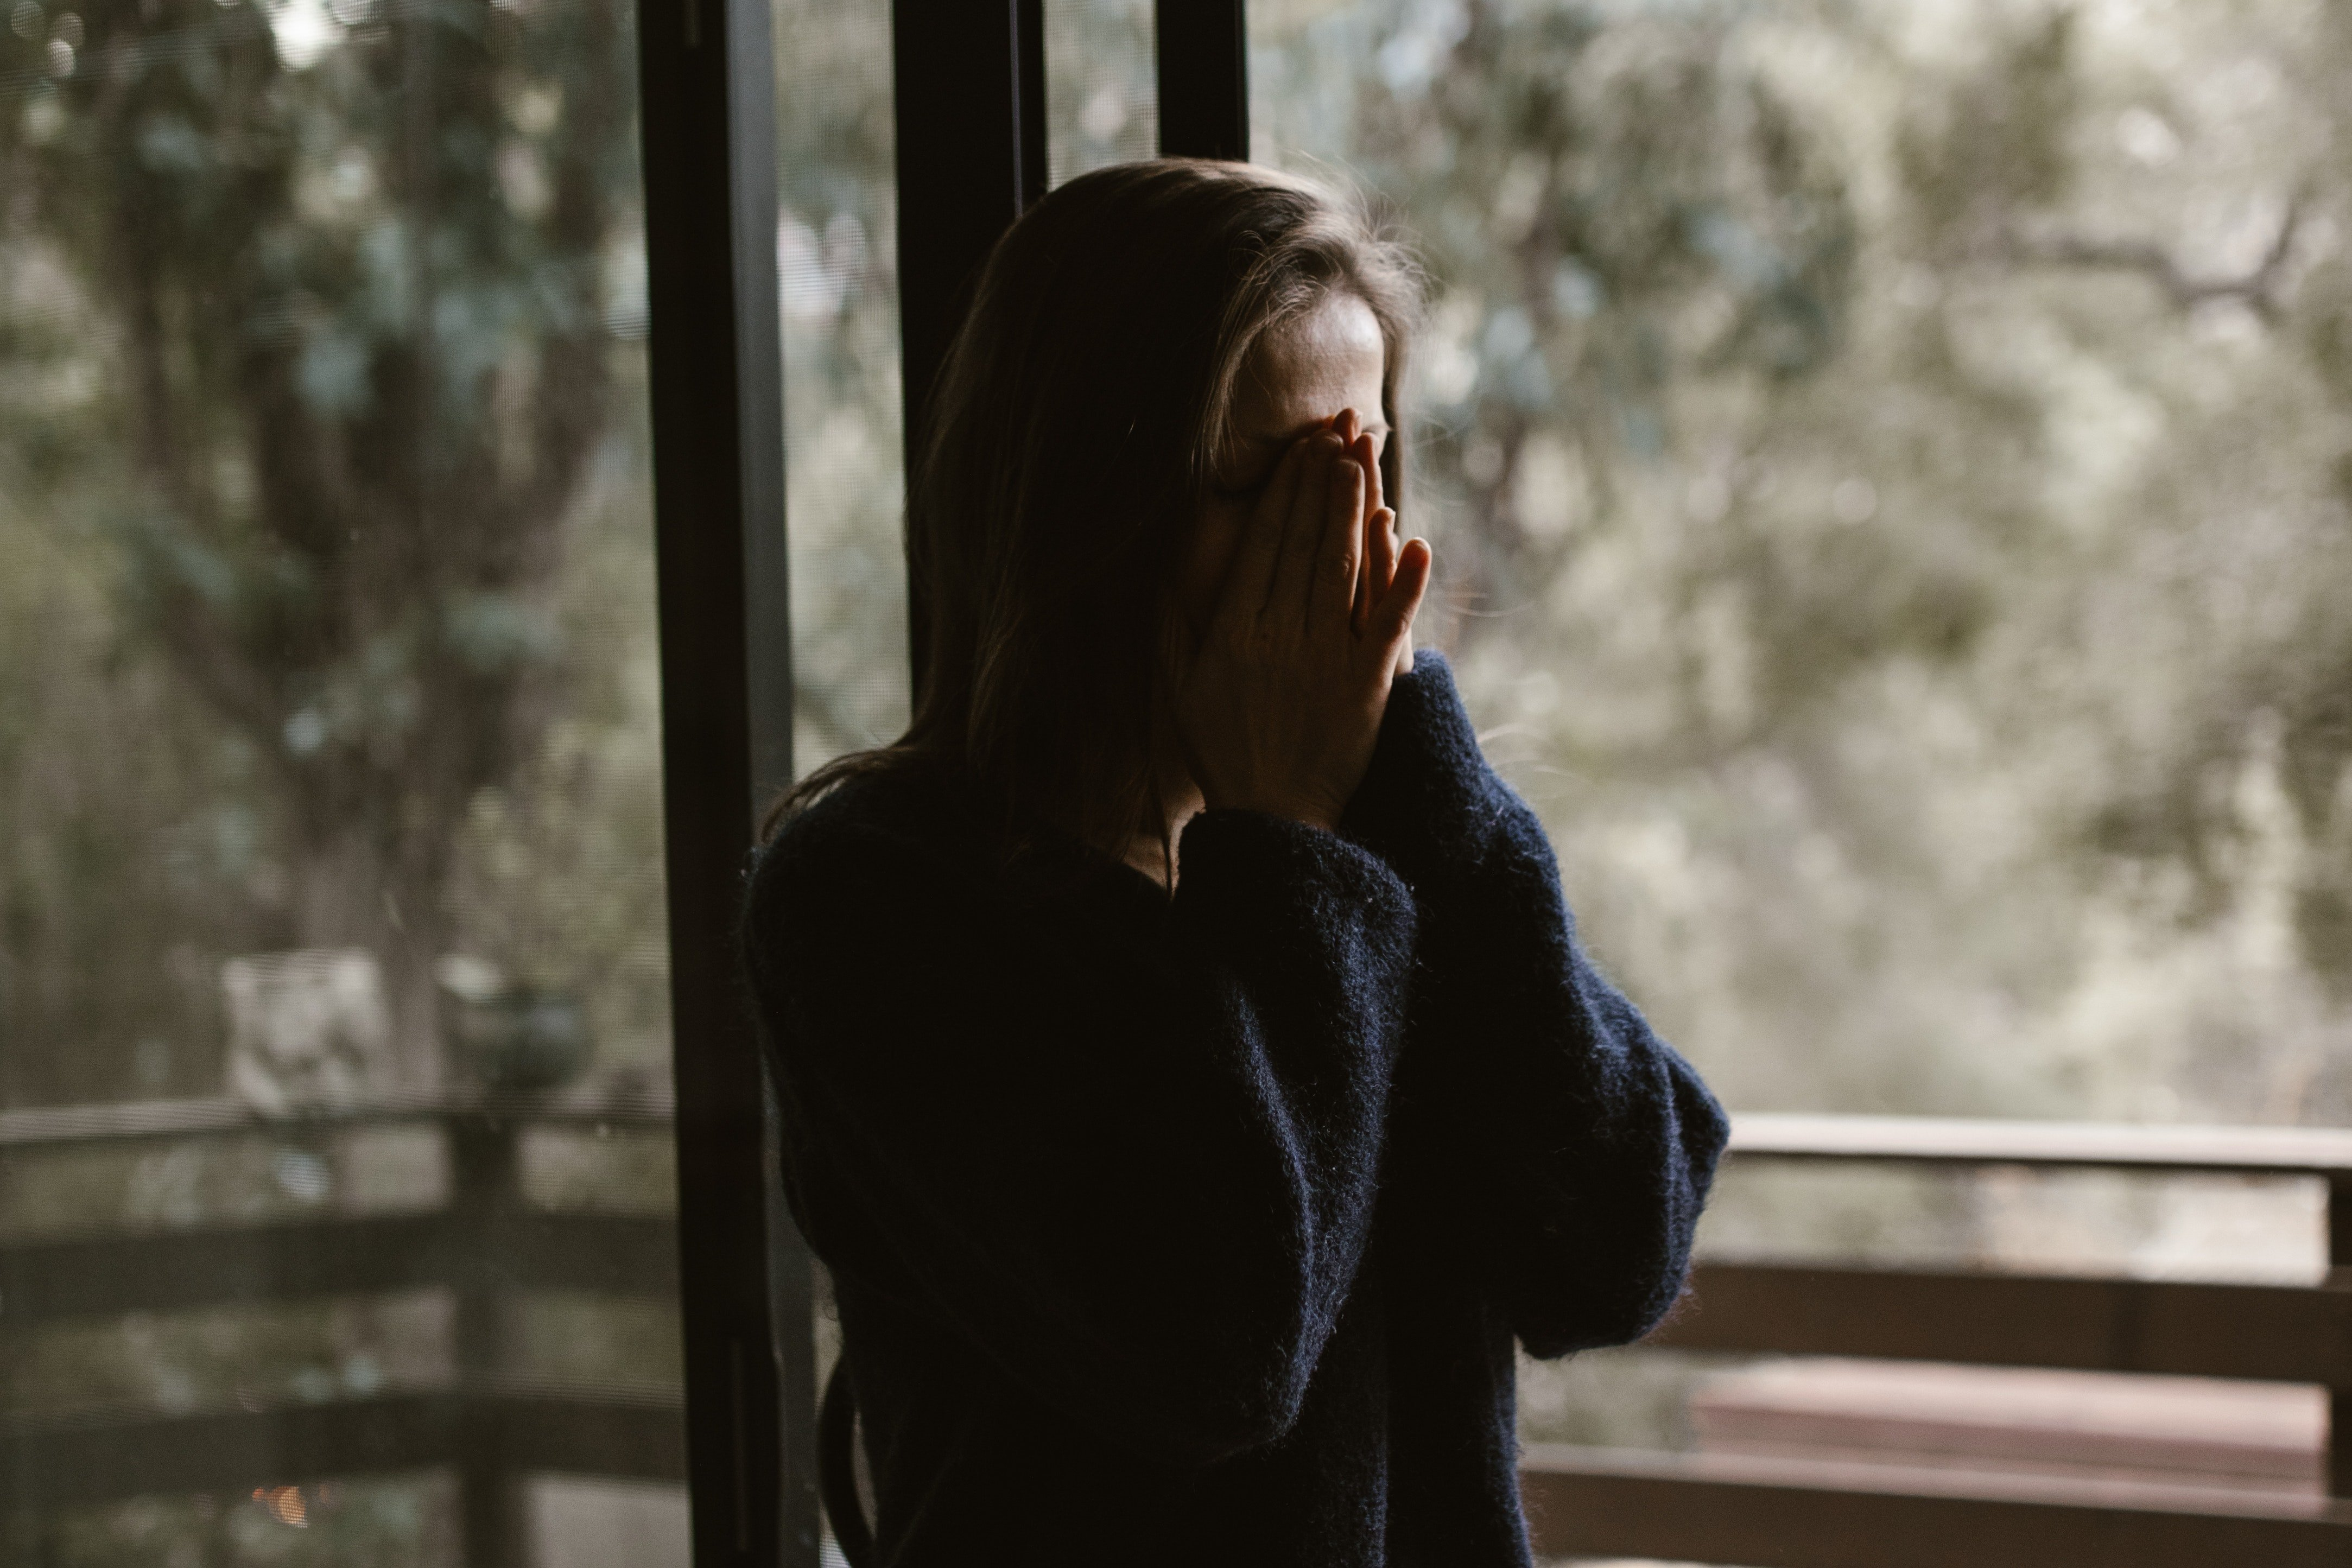 I cried when I found out that I was in an abusive relationship | Source: Pexel